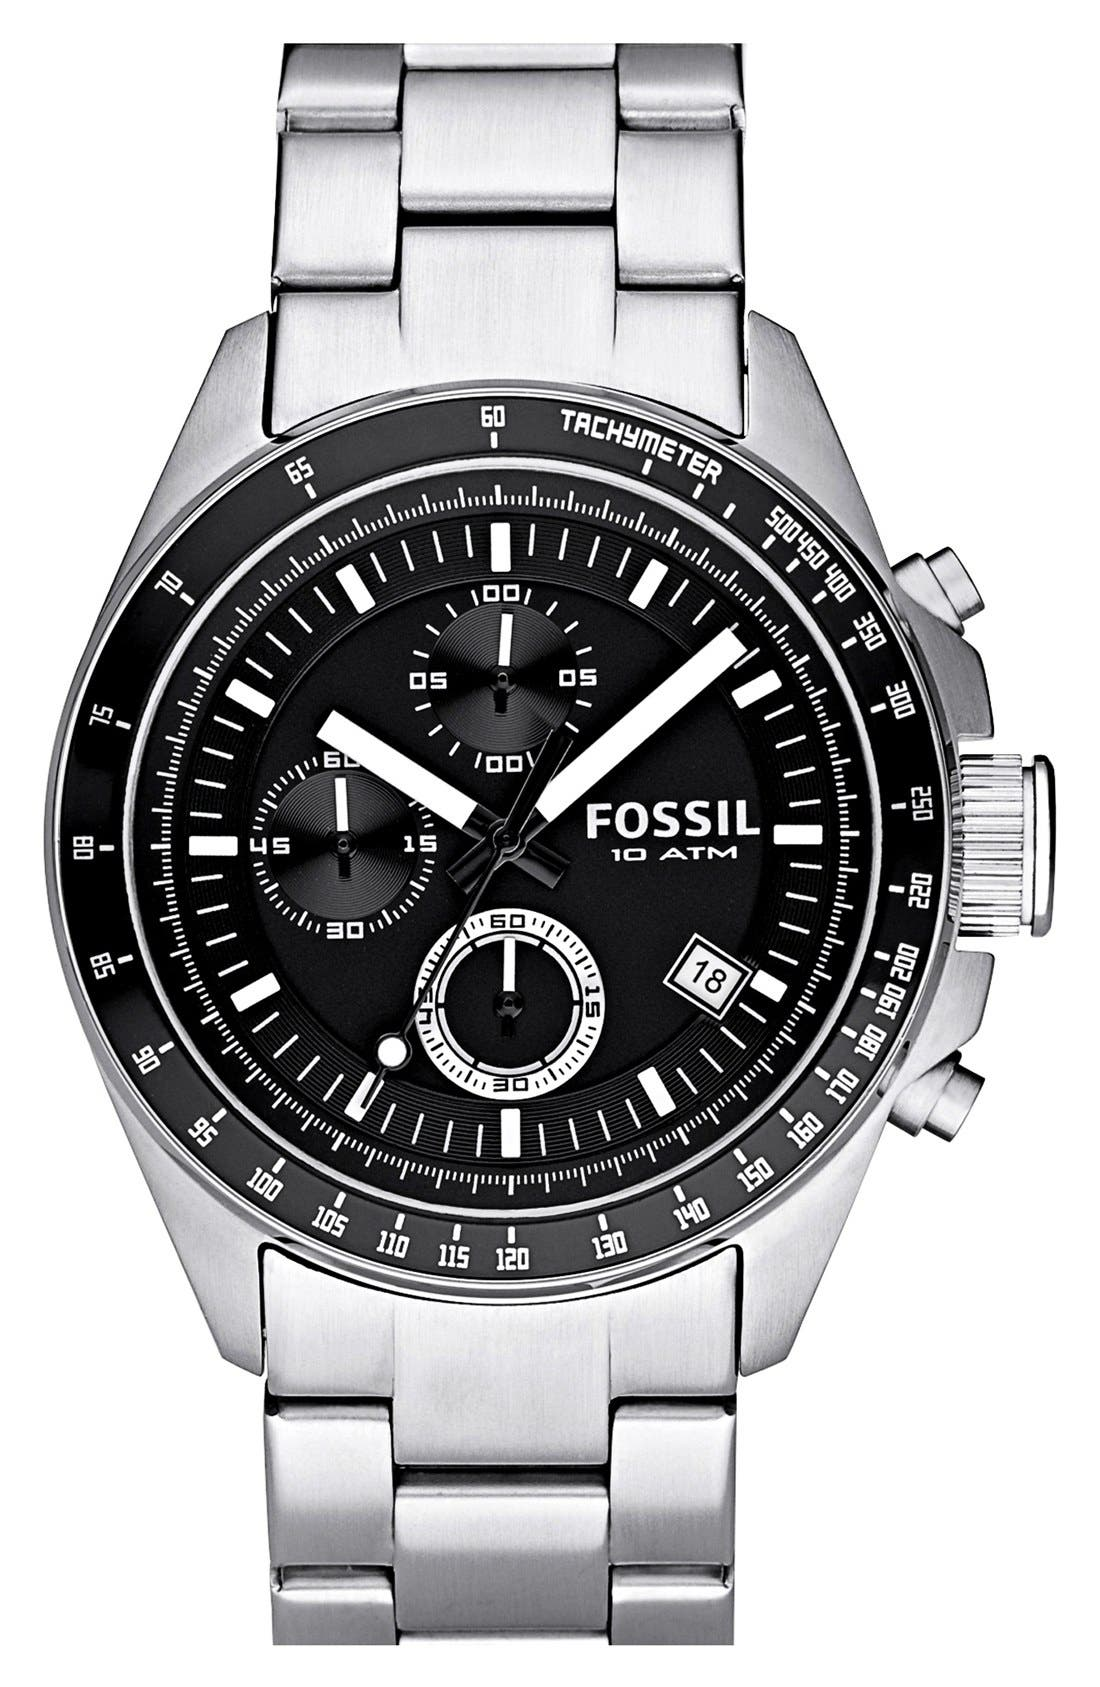 Main Image - Fossil Chronograph Tachymeter Watch, 44mm